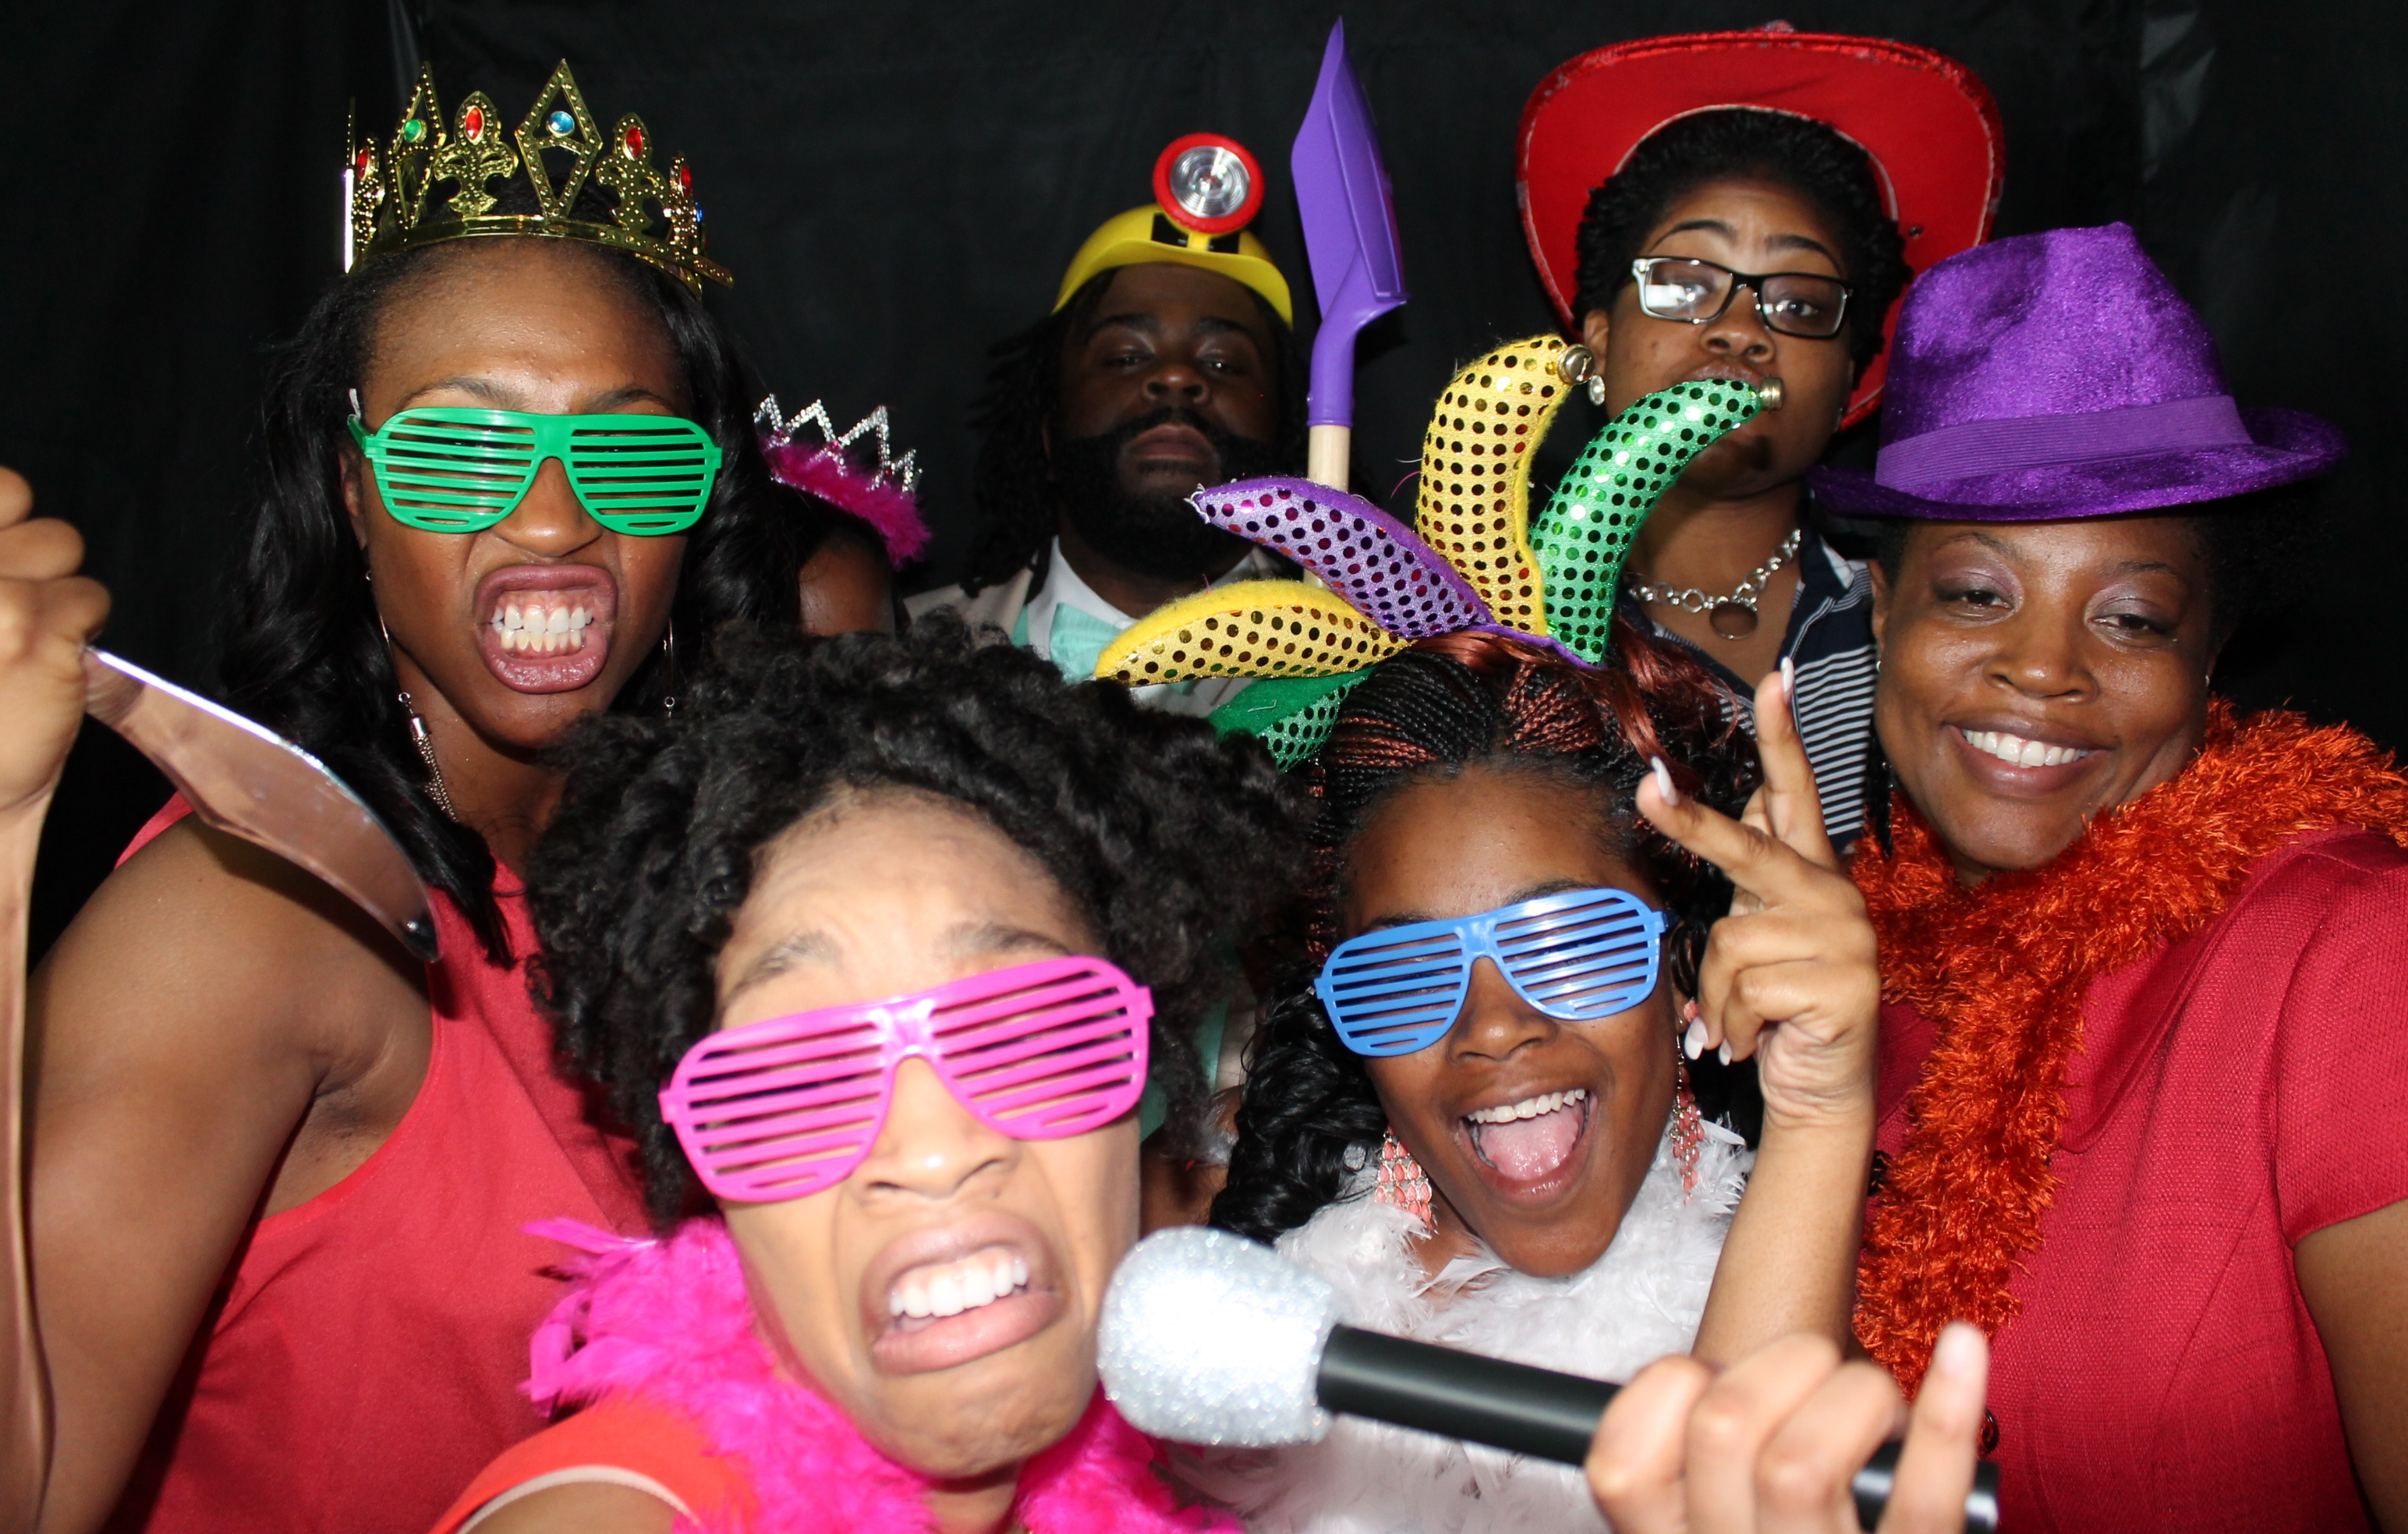 Westin.Hilton.Head.Island.SC.Photo.Booth-3.jpg